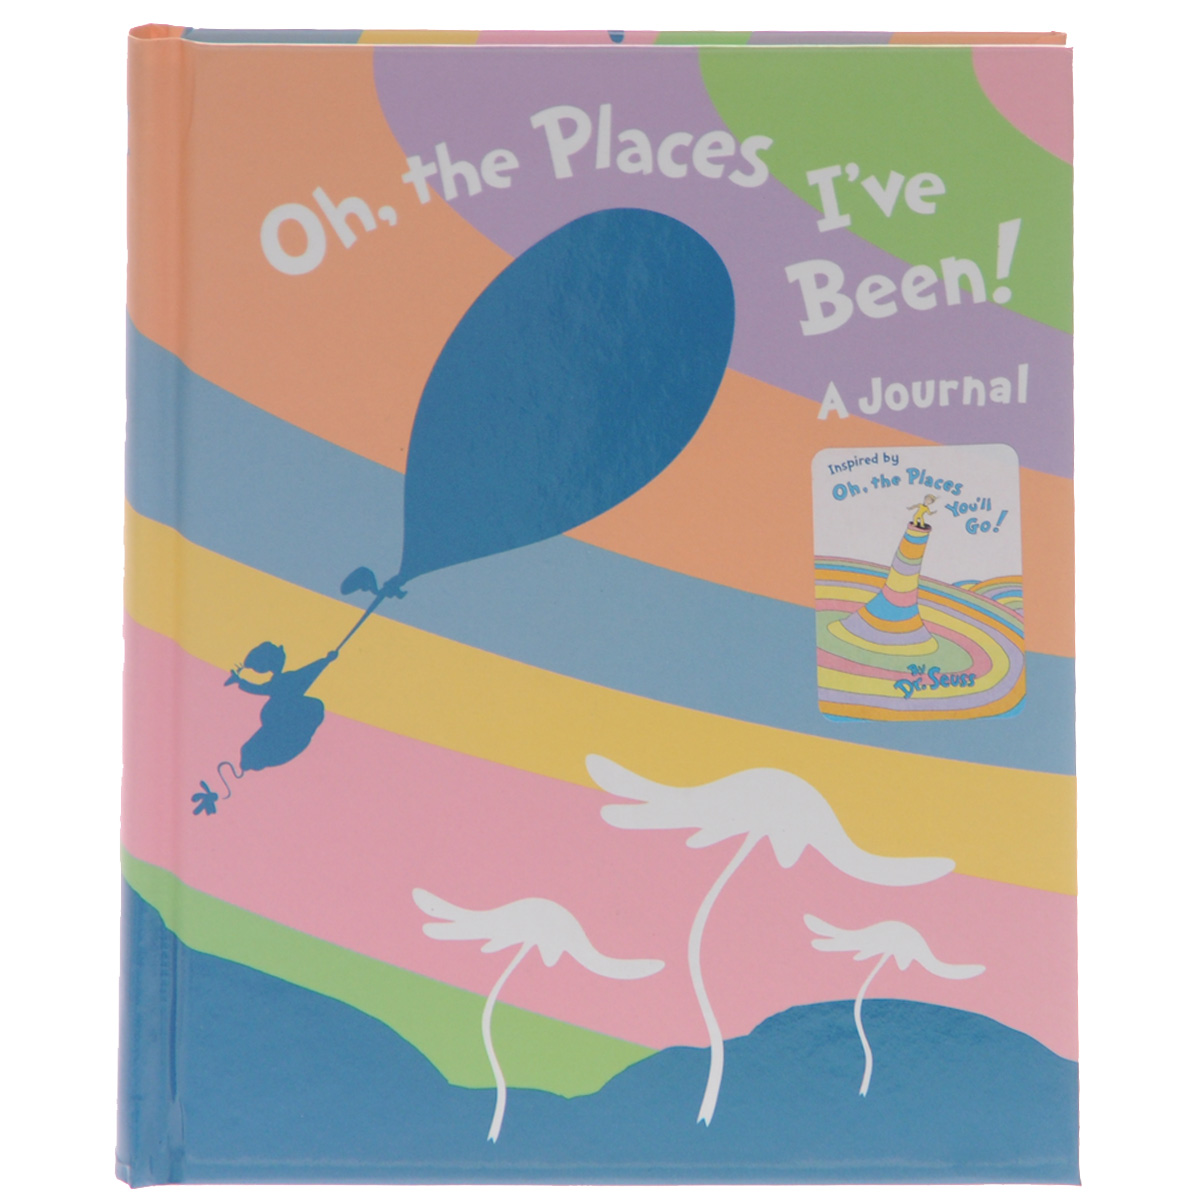 Oh, the Places I've Been! A Journal kicute 1pcs leather diaries journal notebook secret leather diary with lock password lined business office school supplies